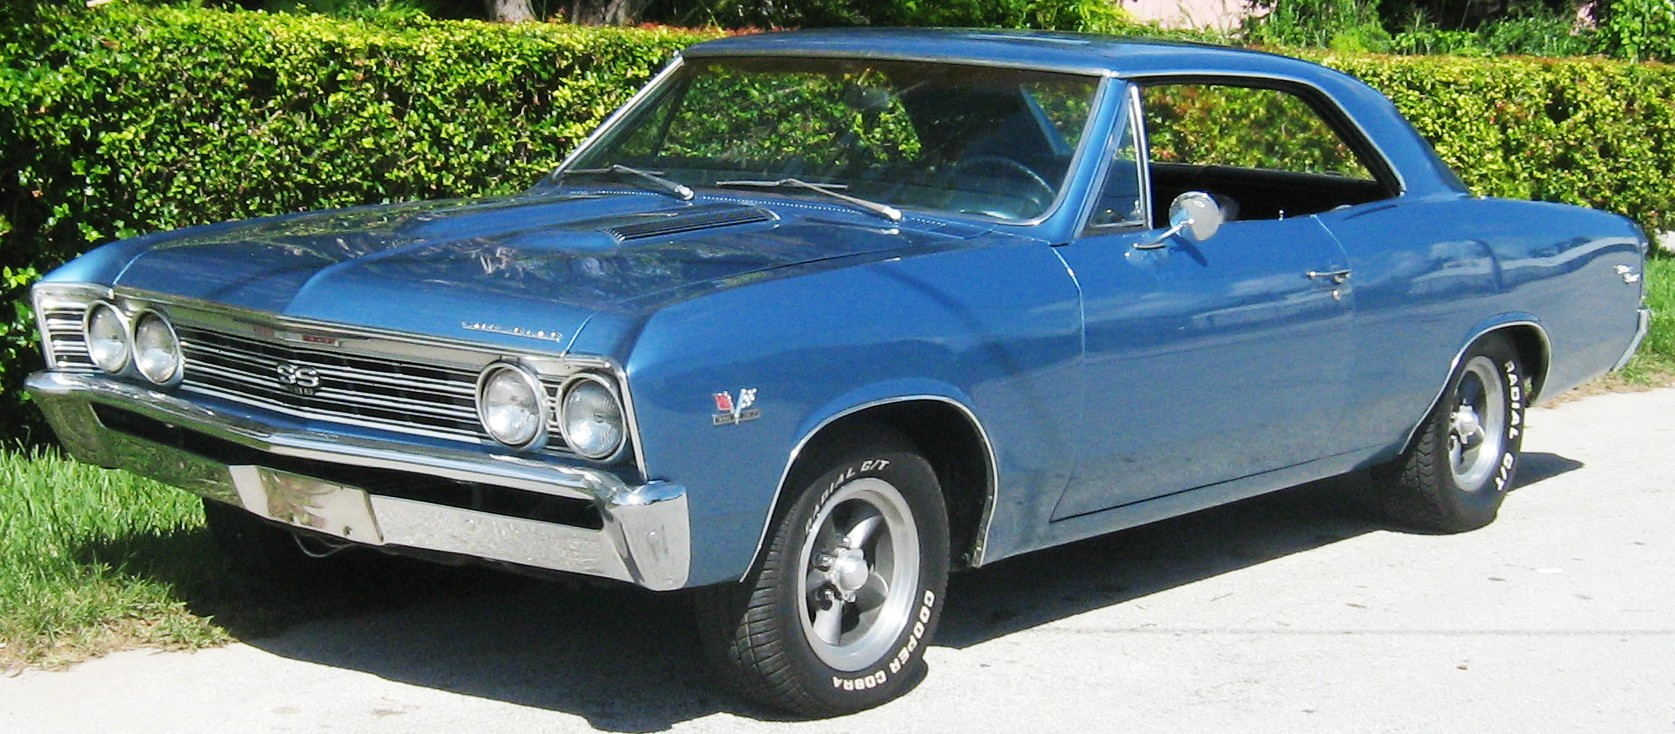 ... Chevrolet Chevelle SS-396 Coupe 1967